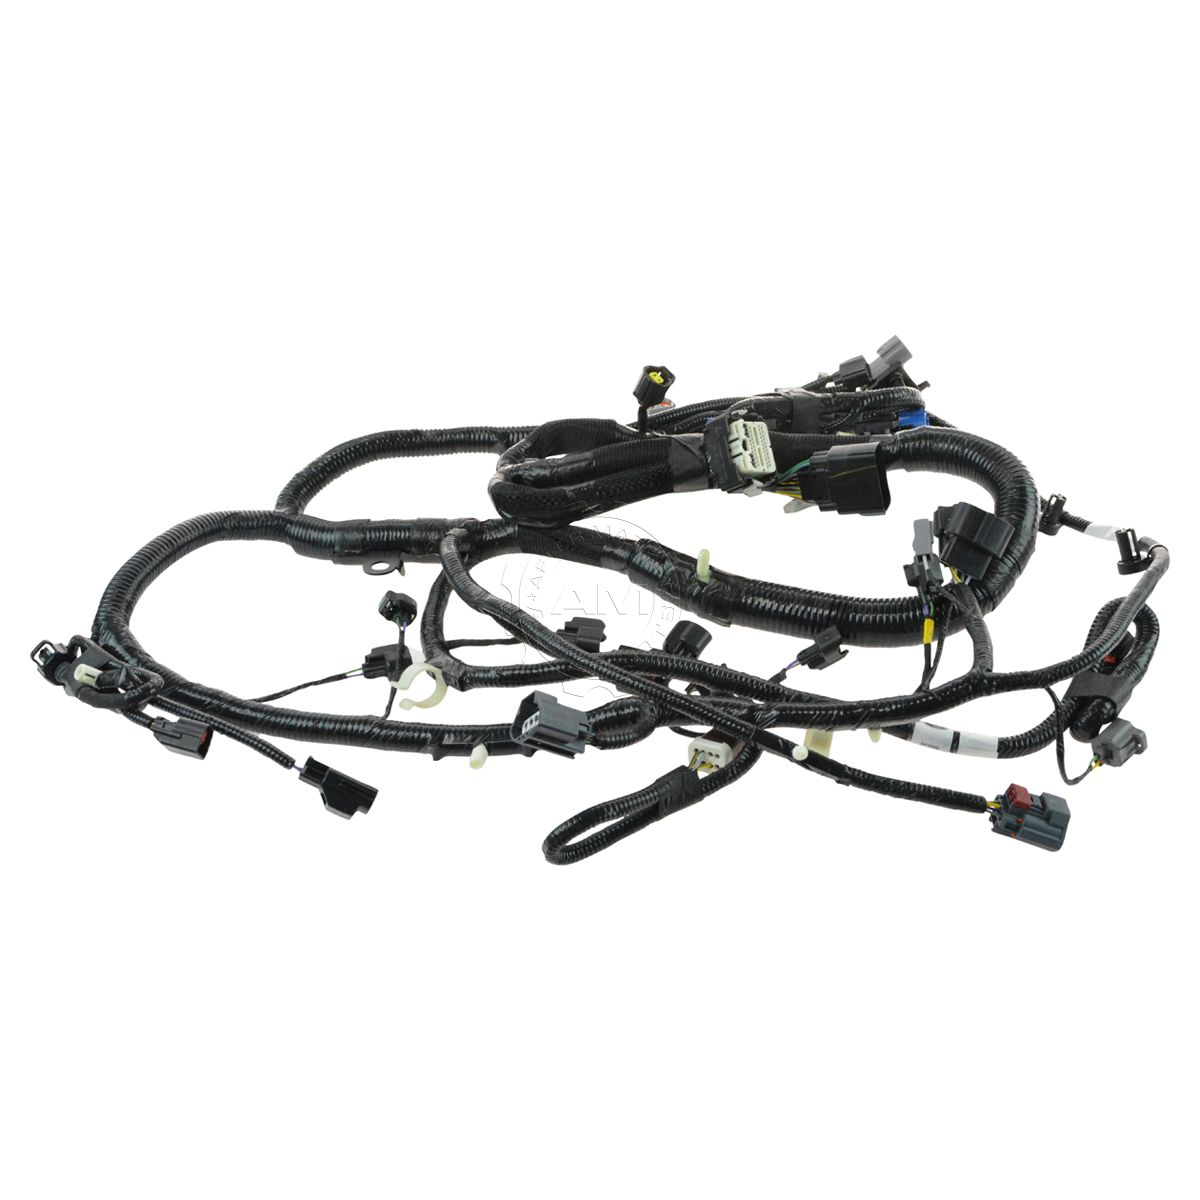 96 F350 Engine Wiring Harness Detailed Schematic Diagrams 1997 Ford Diagram Ebay Explore U2022